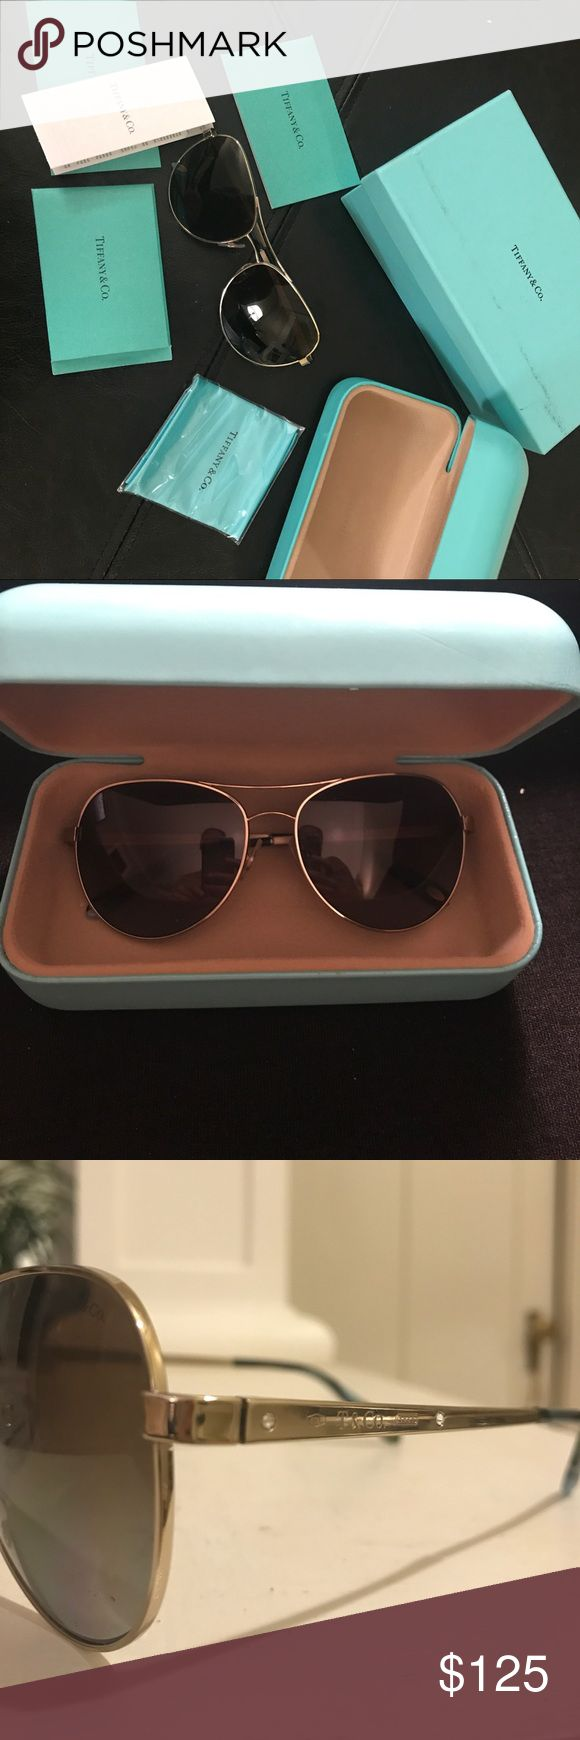 Tiffany Aviator Sunglasses Brand new never worn Tiffany aviators in original packaging with case, glass cleaner, certificate of authenticity, and original box. No longer sold in stores. Tiffany & Co. Accessories Sunglasses